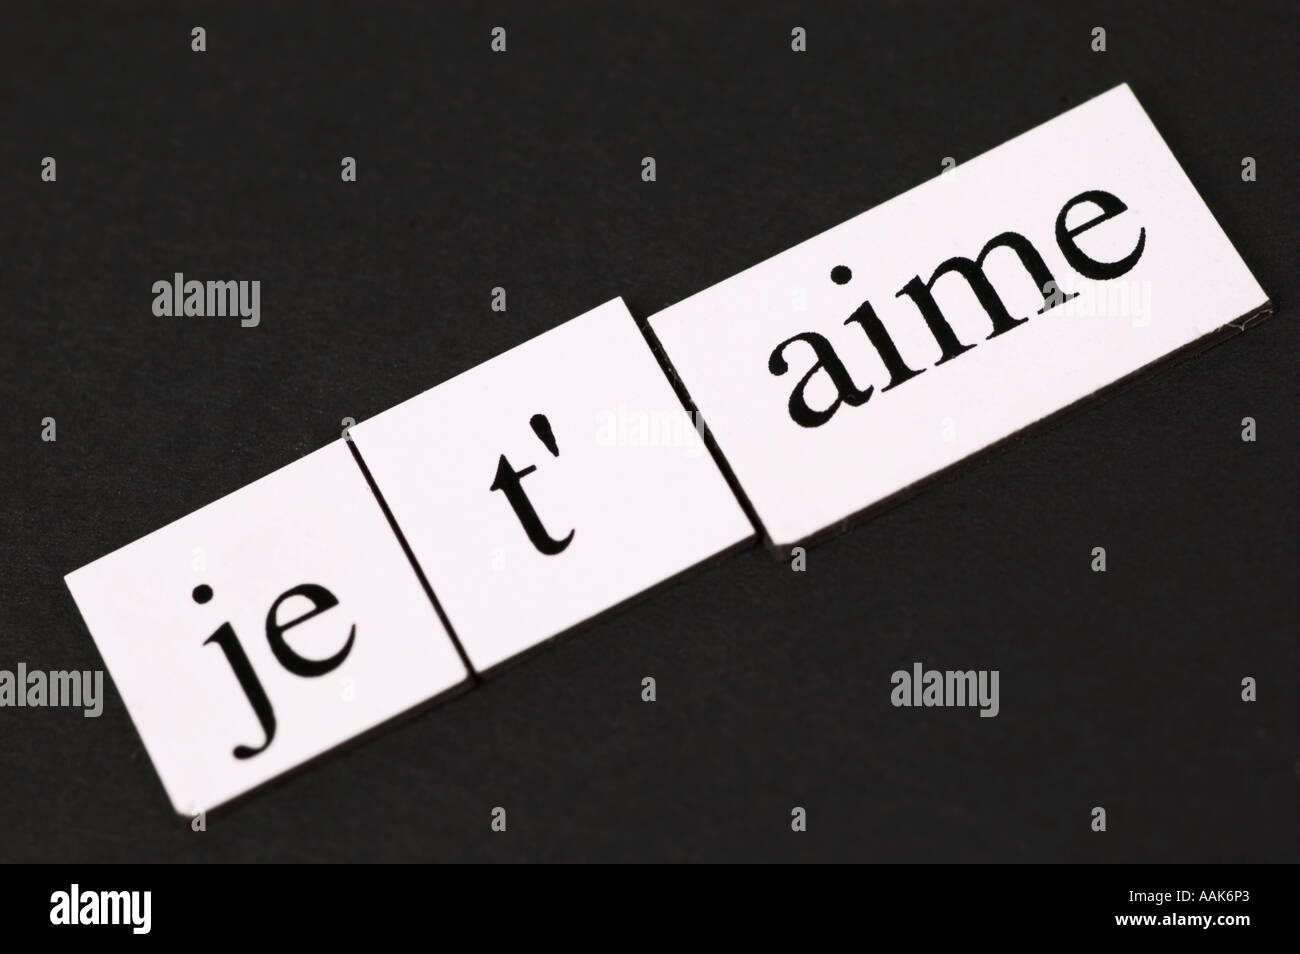 Magnetic fridge words spelling out Je t'aime - Stock Image